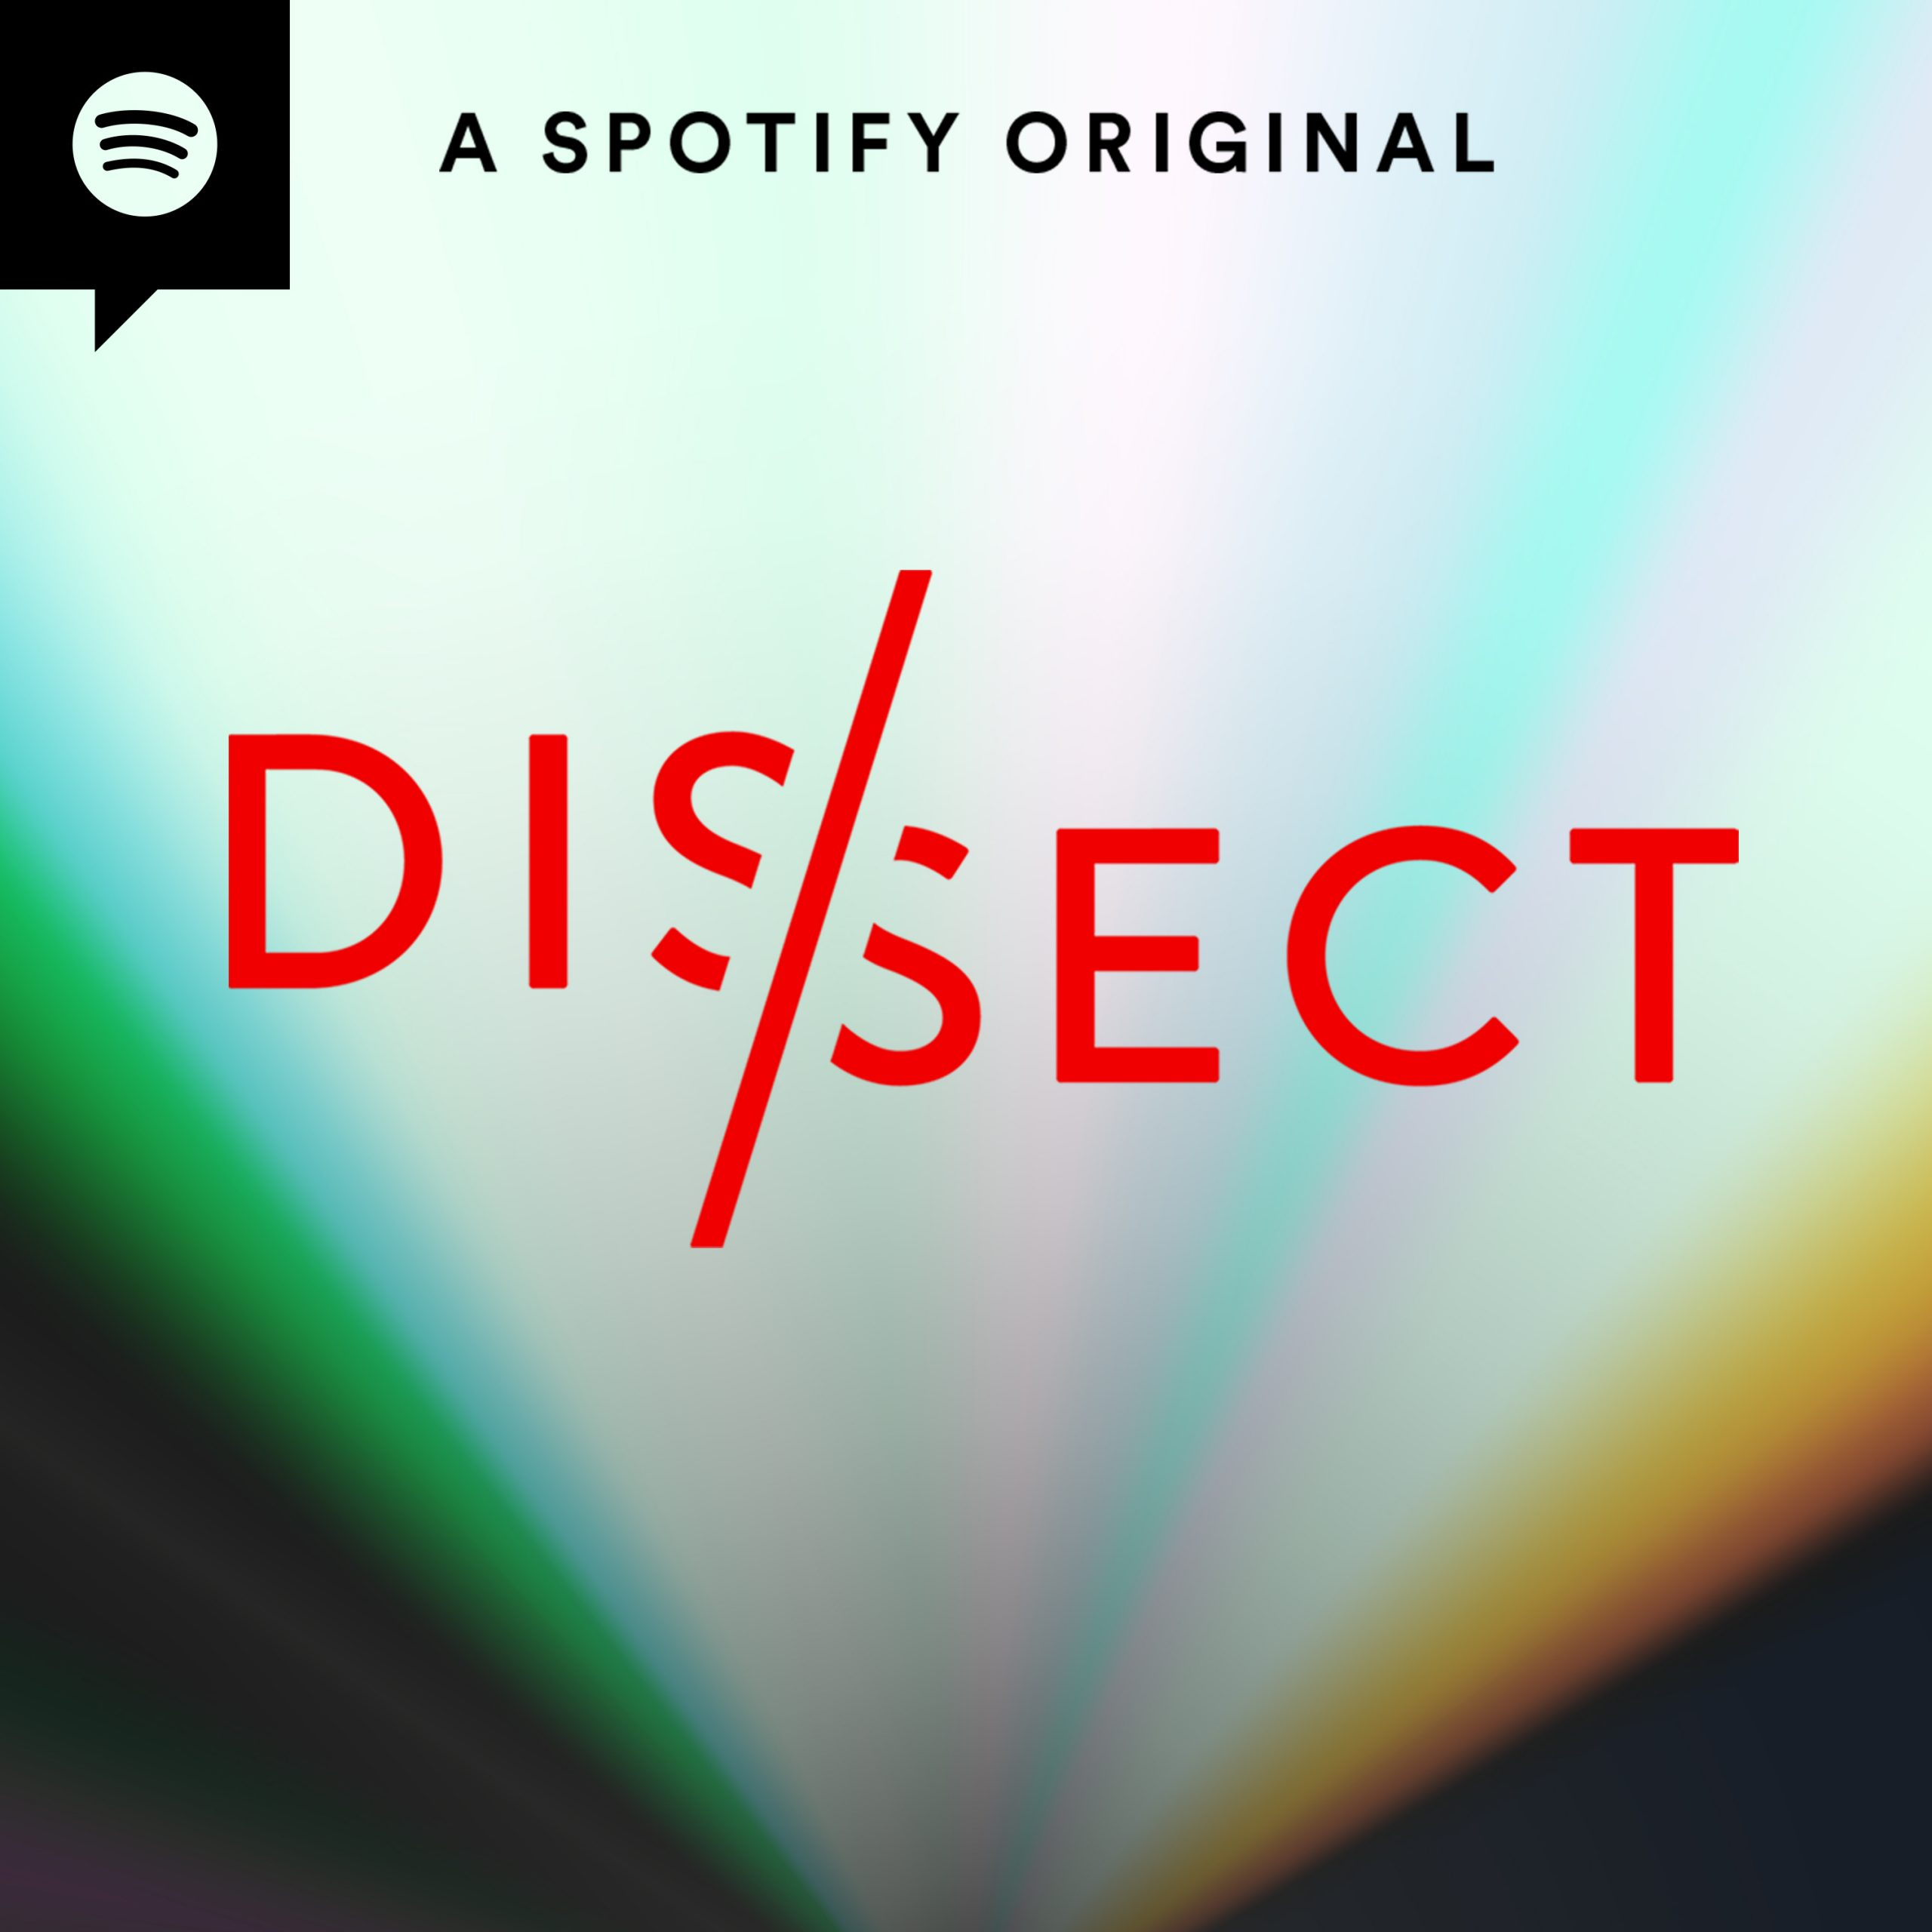 The 'Dissect' Podcast Tackles 'Yeezus' by Kanye West for Season 8